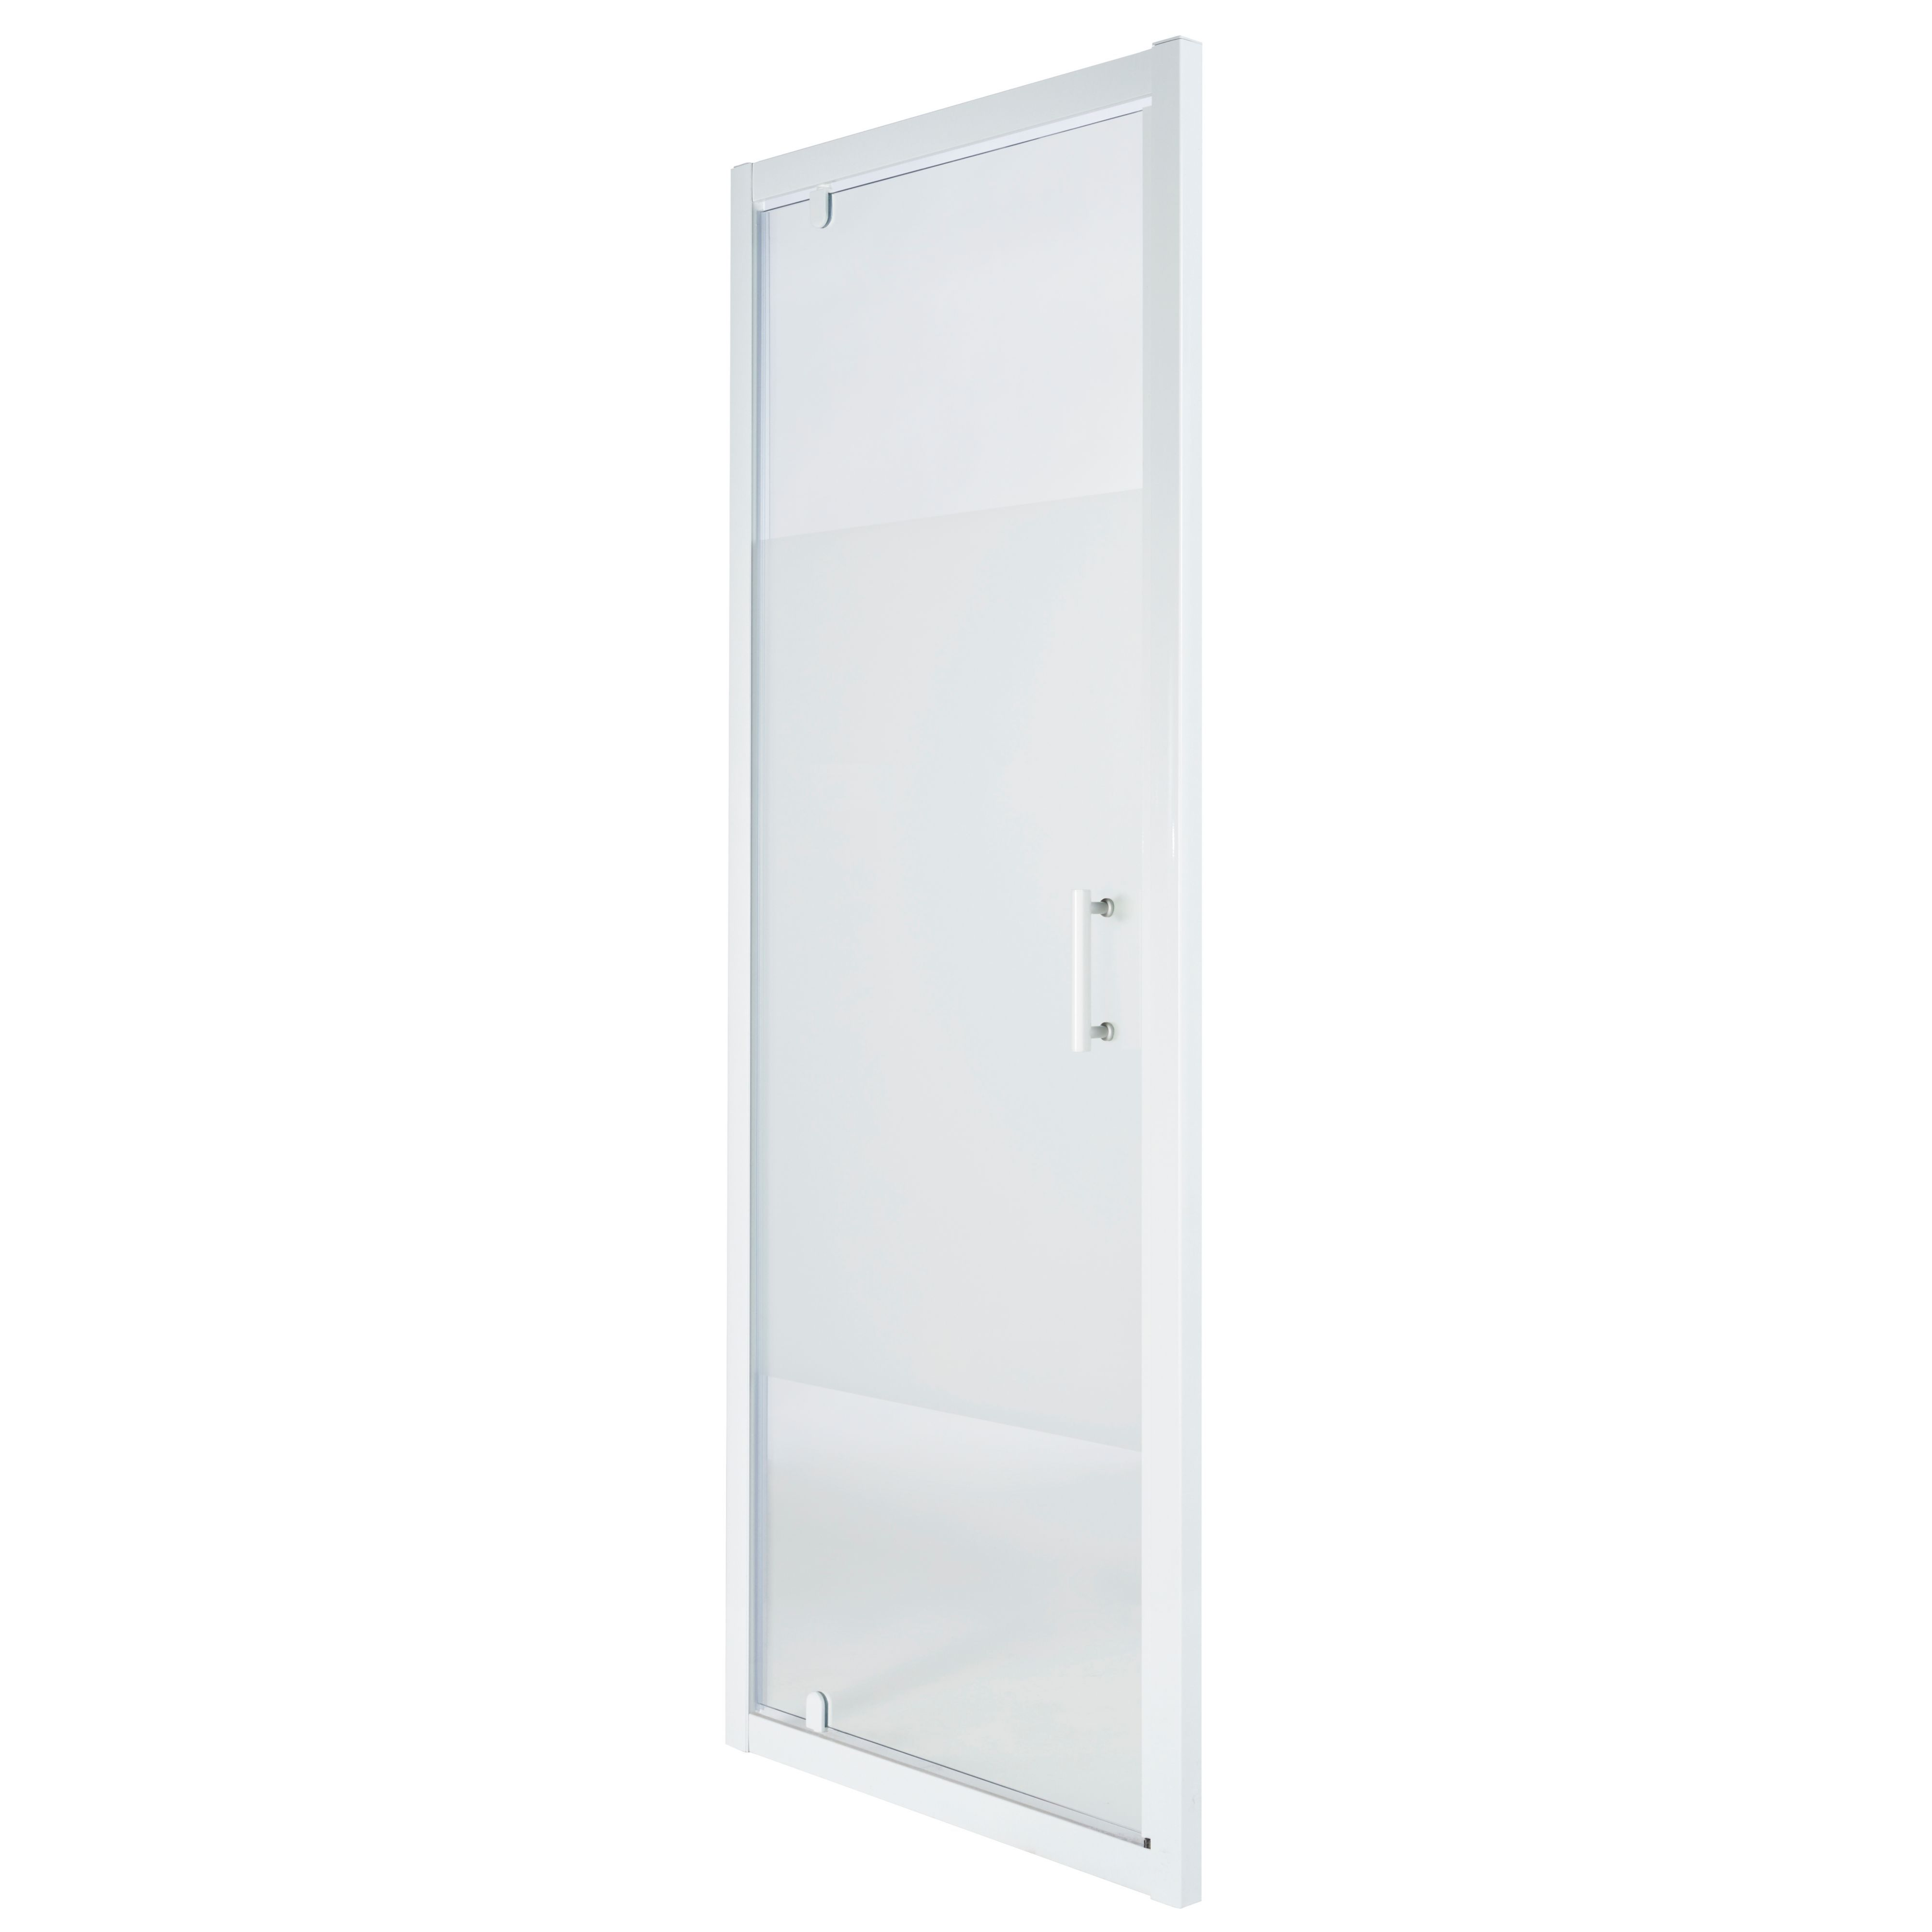 Cooke Lewis Onega Shower Door With Pivot Door Frosted Effect Glass W 760mm Departments Diy At B Q